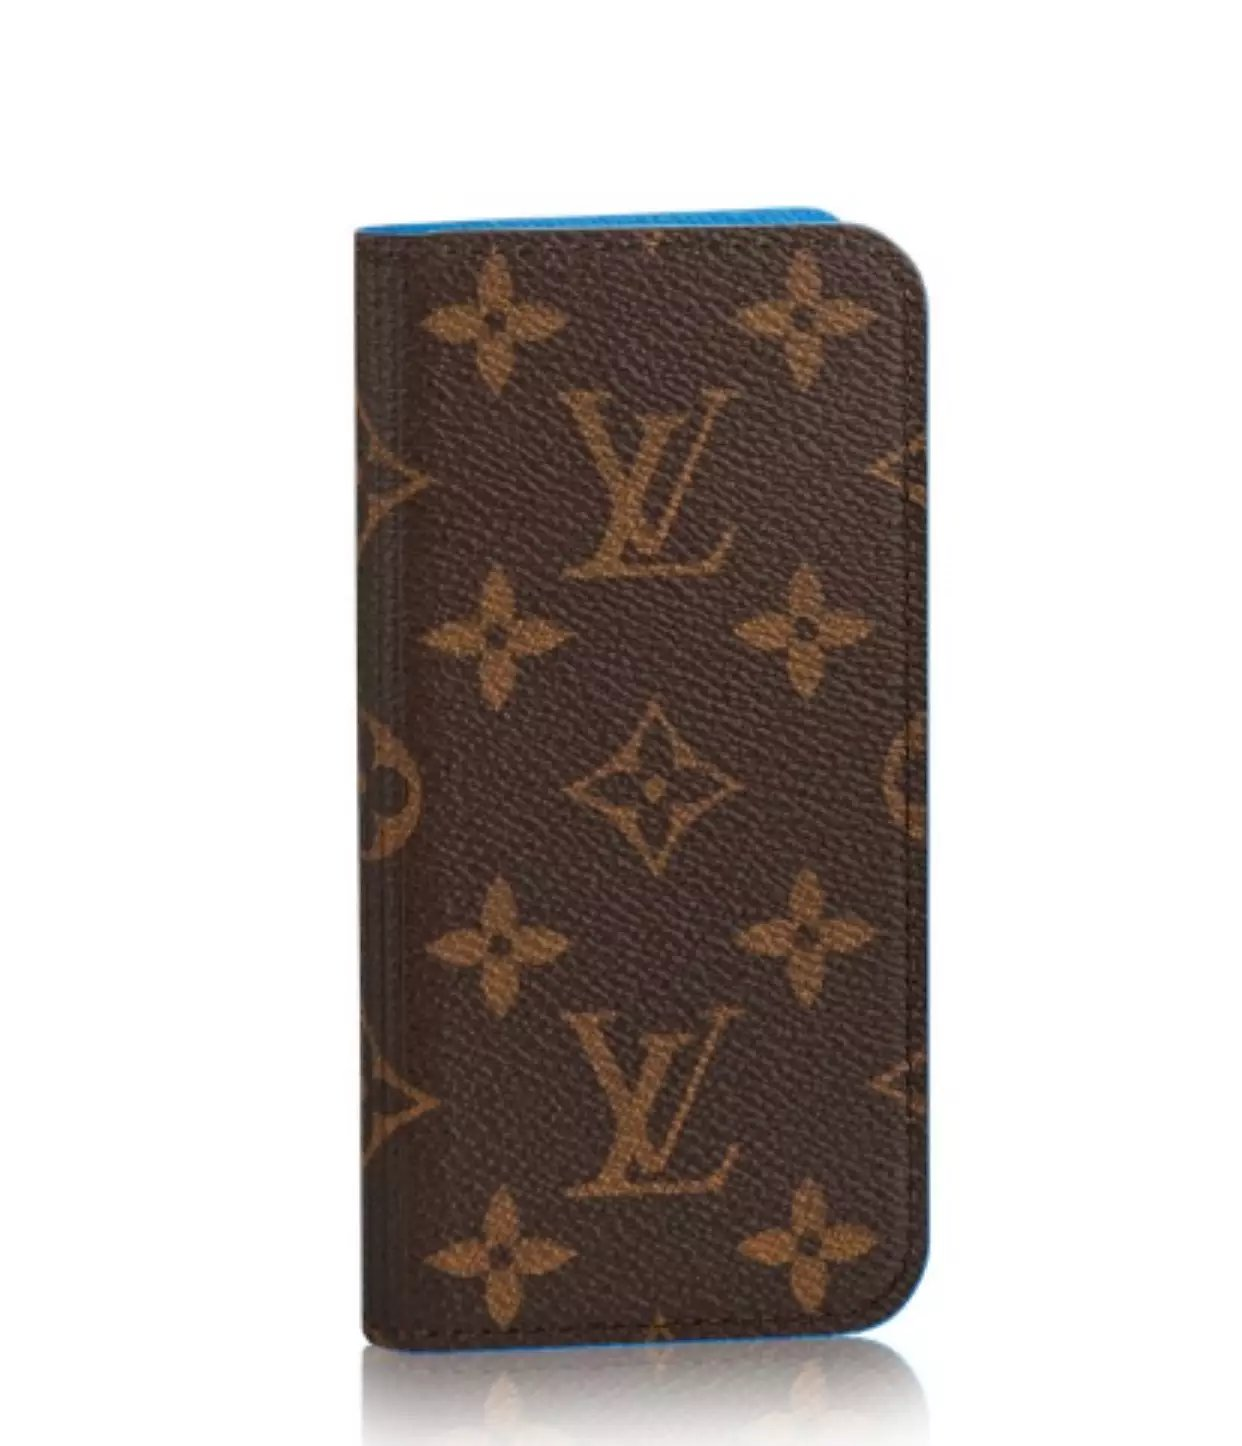 iphone silikonhülle iphone case mit foto Louis Vuitton iphone6 hülle ihpne 6 individuelle iphone hülle handy hülle drucken s6 hülle 6lbst gestalten iphone hülle apple iphone hülle